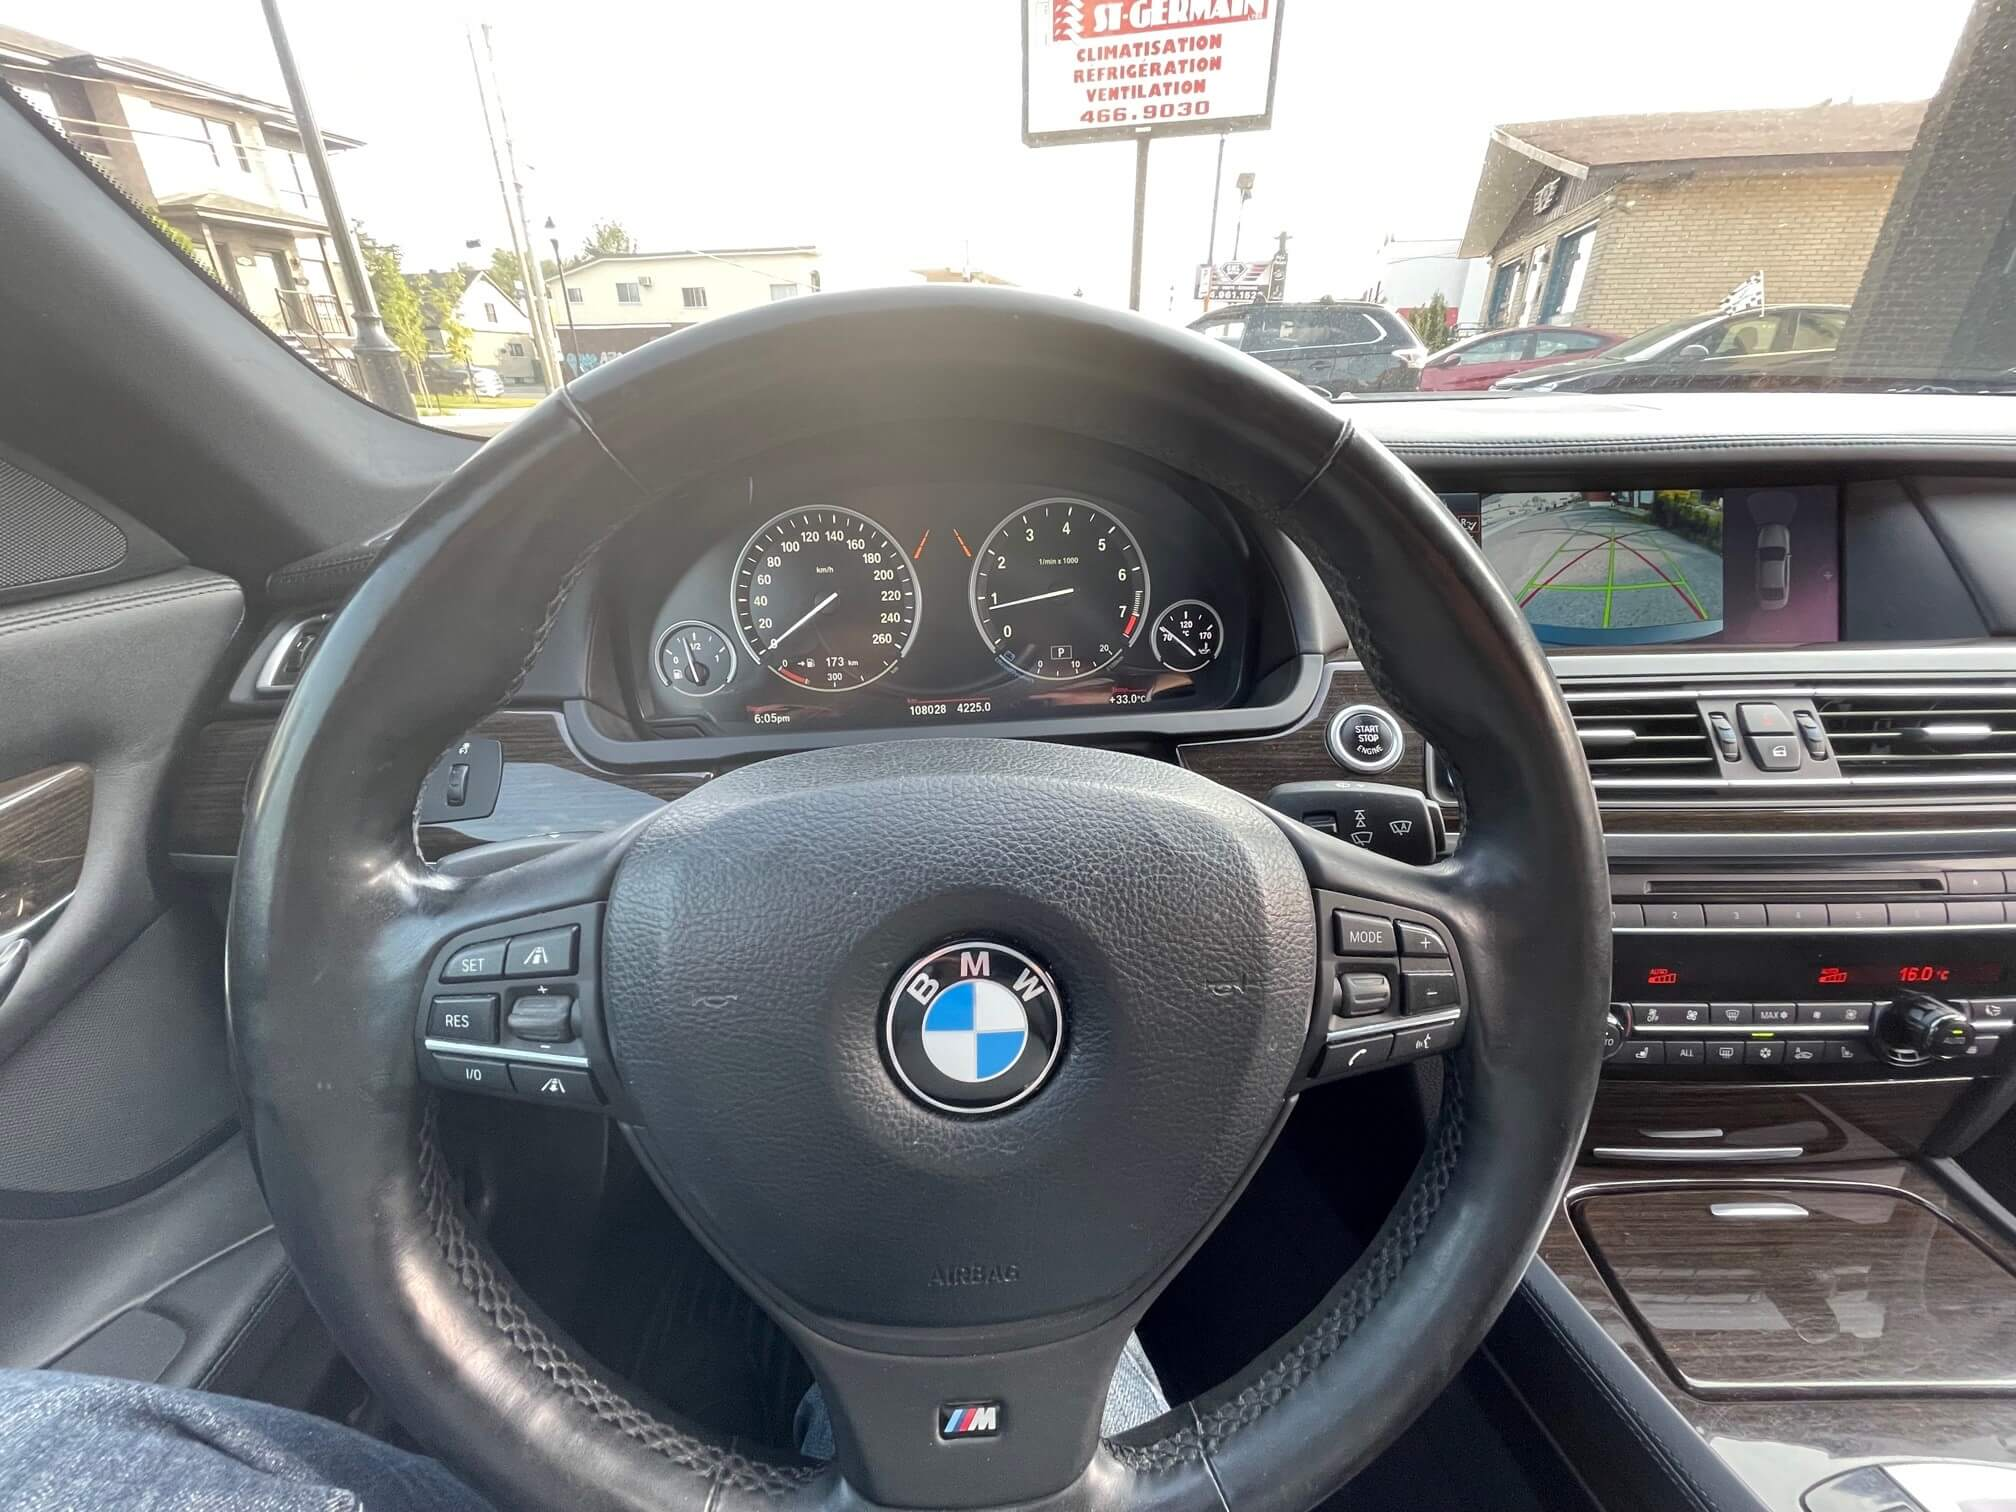 2012 Bmw 7-Series complet